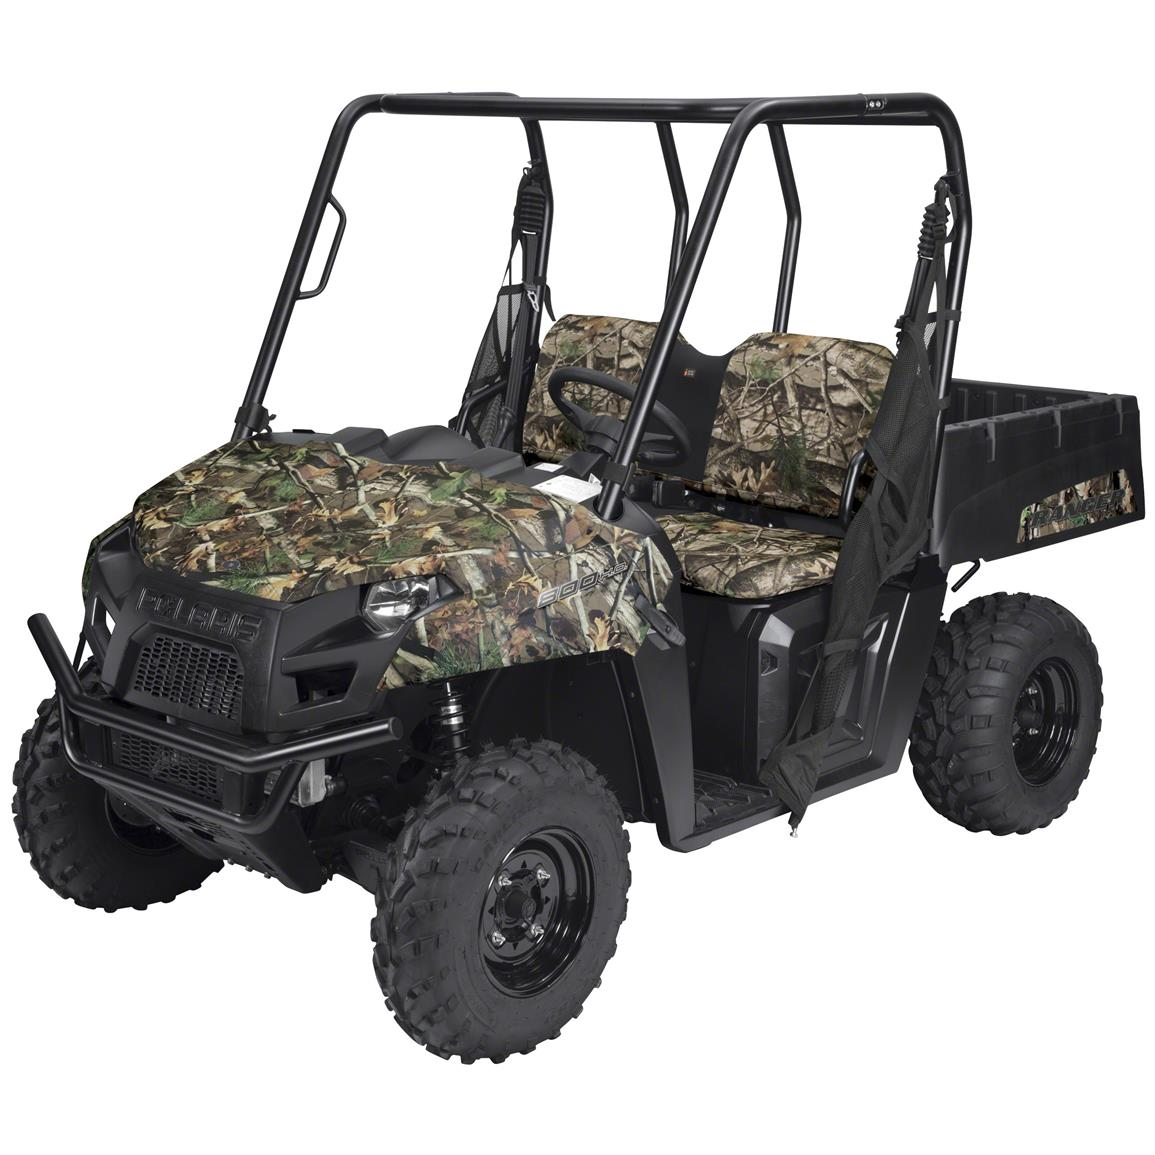 Quad Gear UTV Bench Seat Cover, Polaris Ranger Full-size 800 and 900 Series, Next Camo